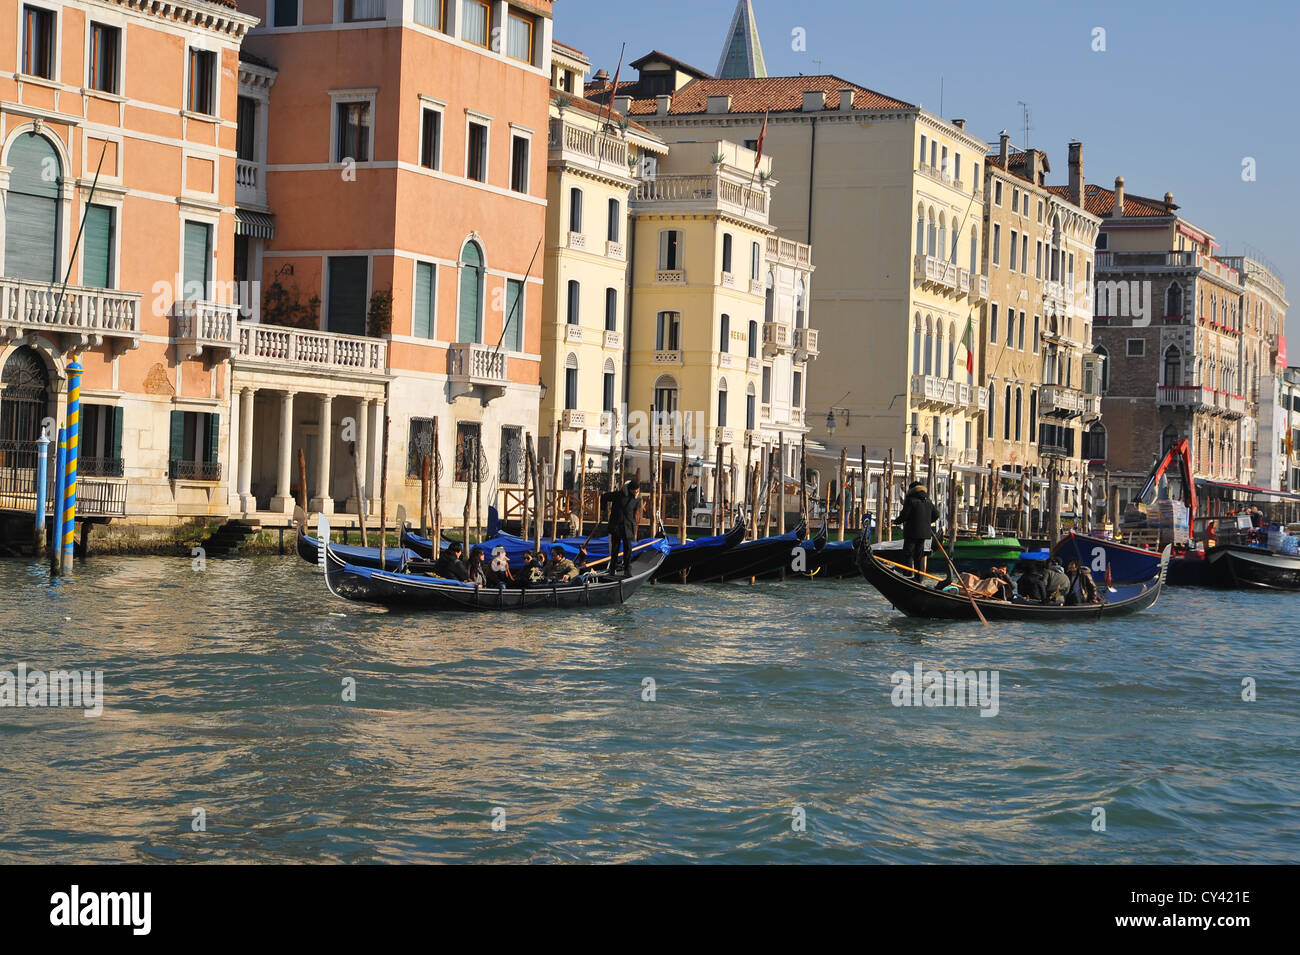 Gondolier on the Grand Canal in Venice, Italy. - Stock Image